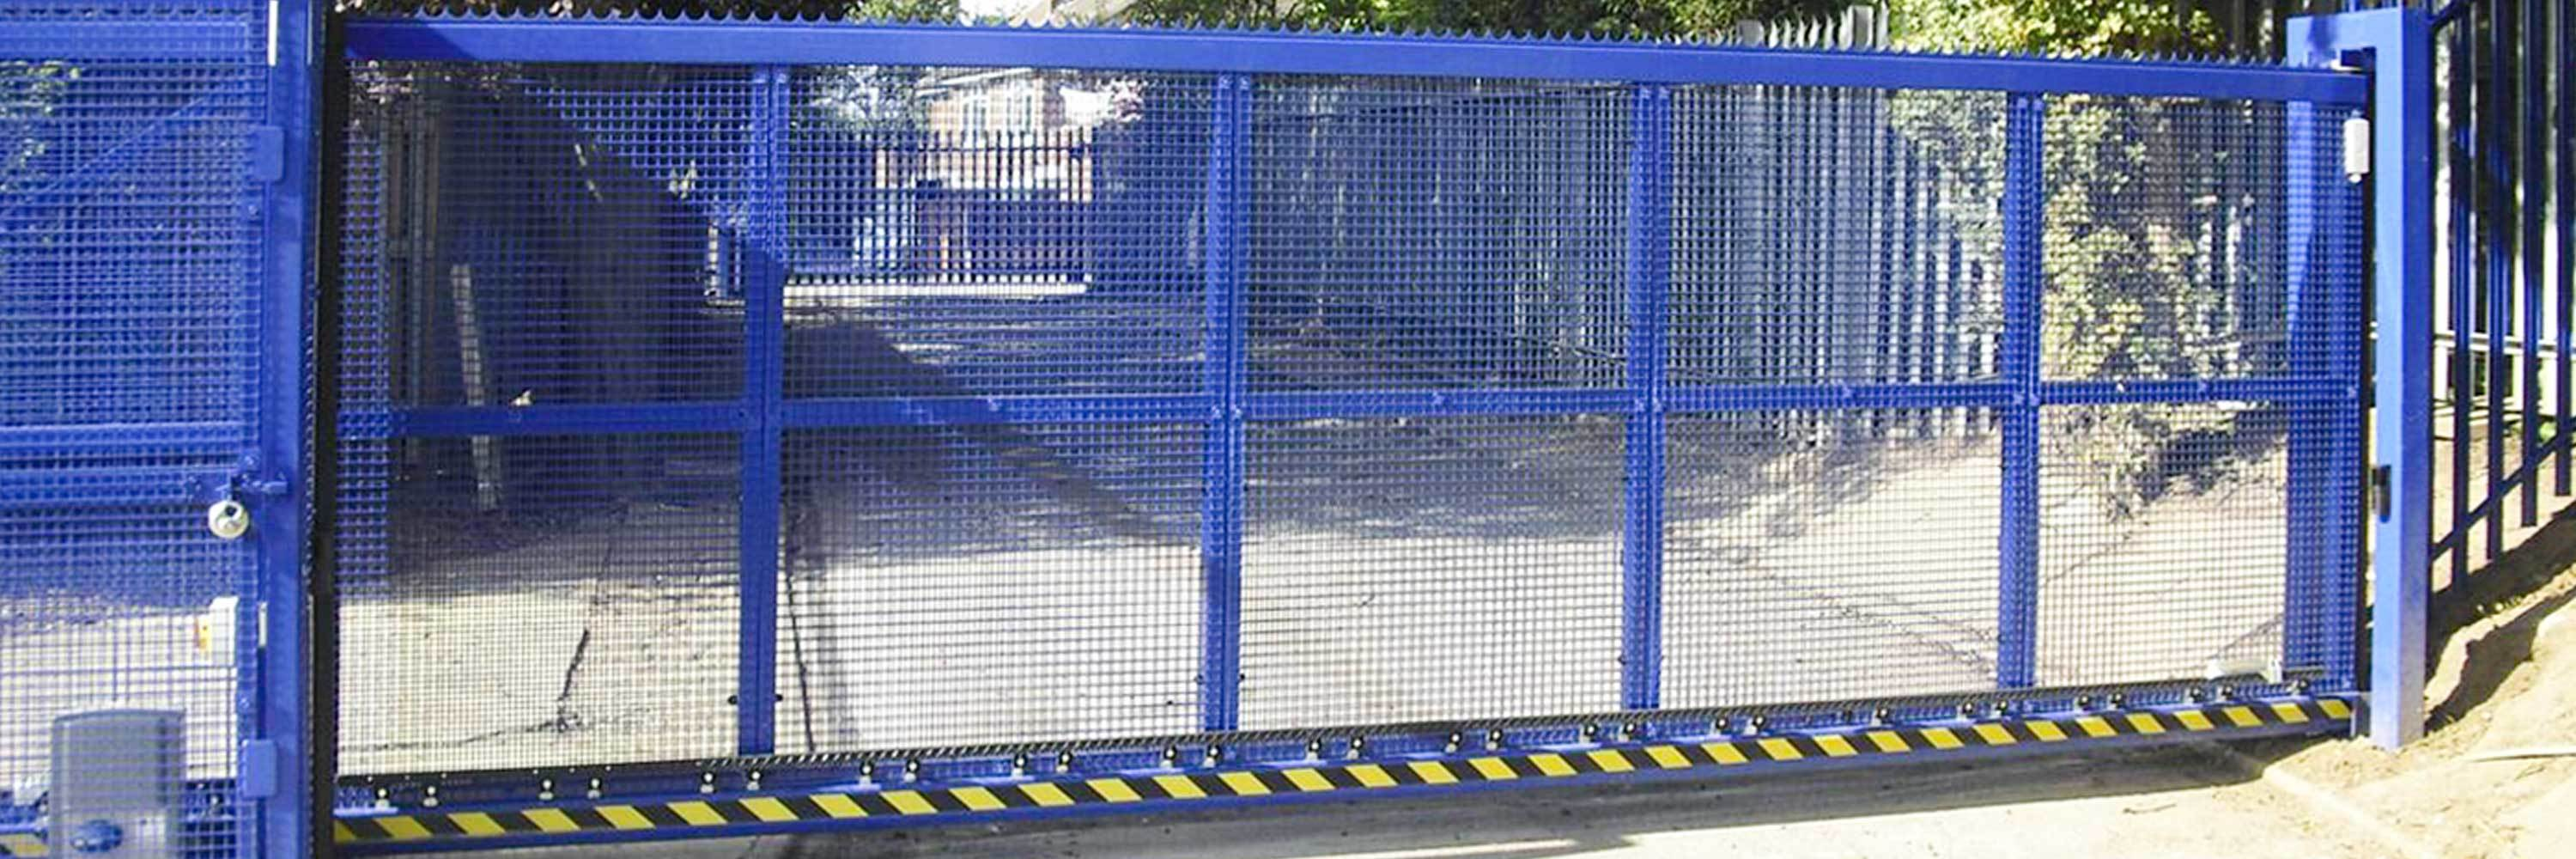 Oxley Gates School Blue Large